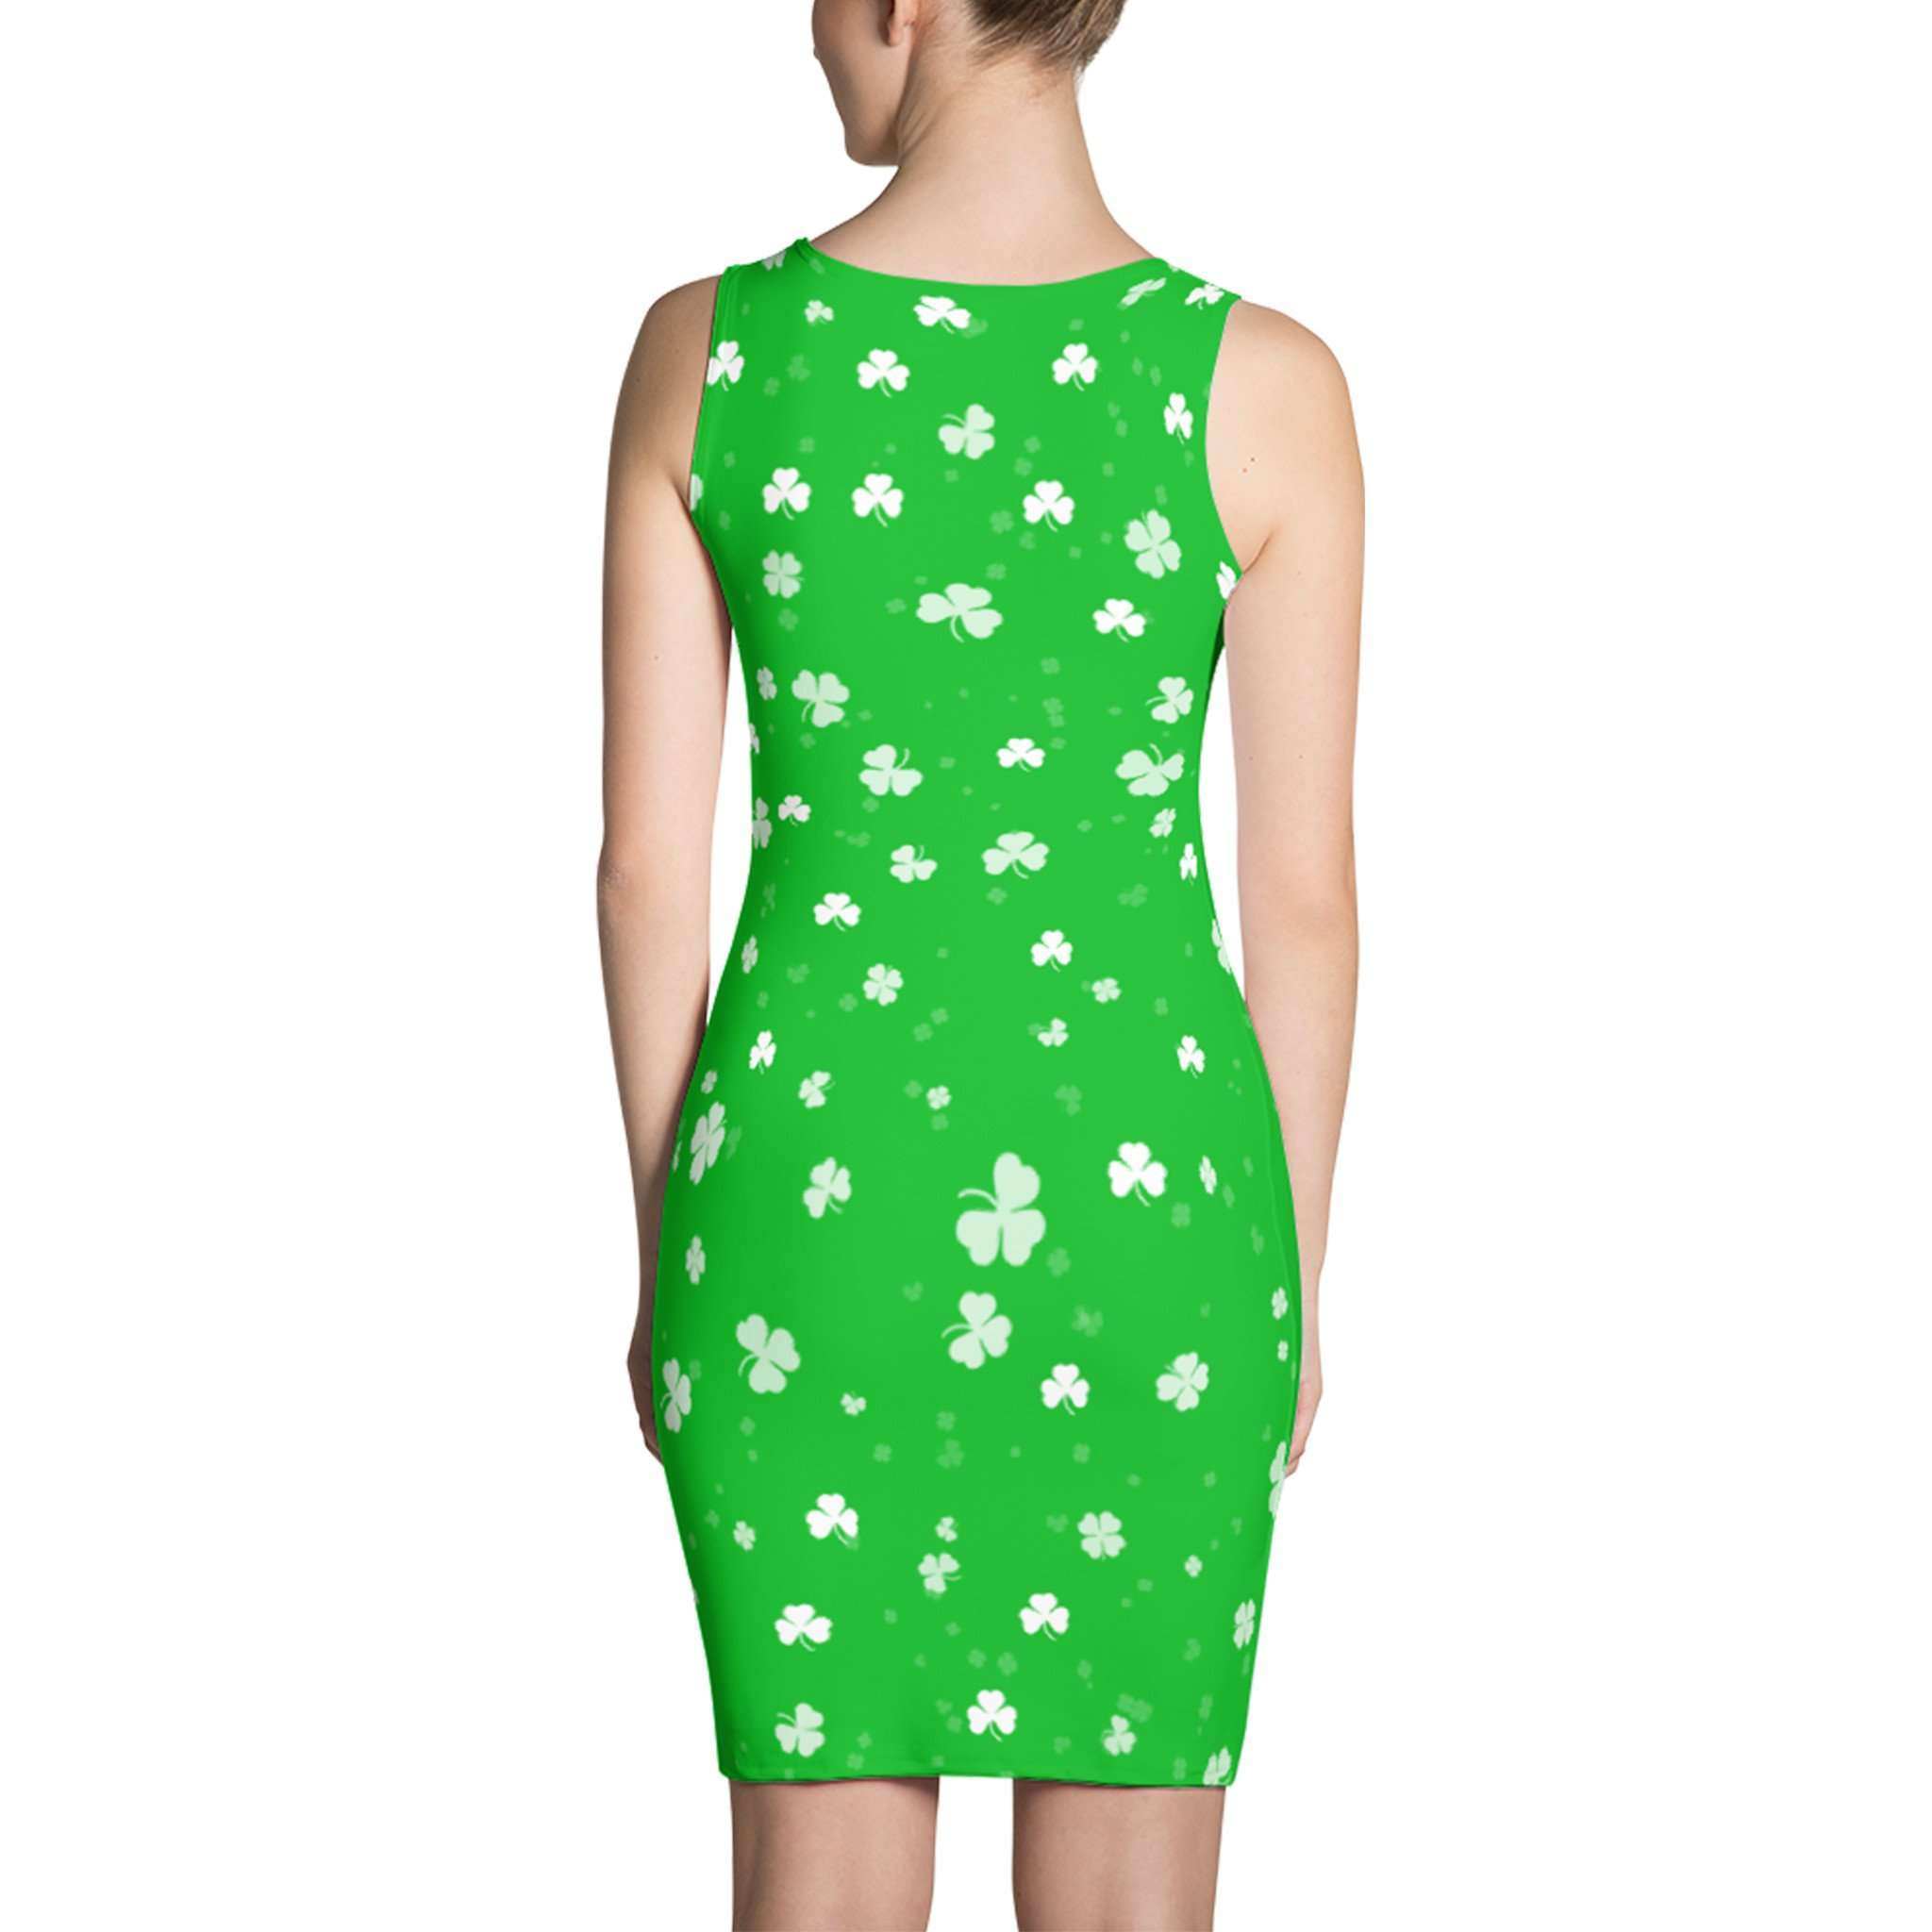 st patricks day dress saint patricks day dress saint paddys